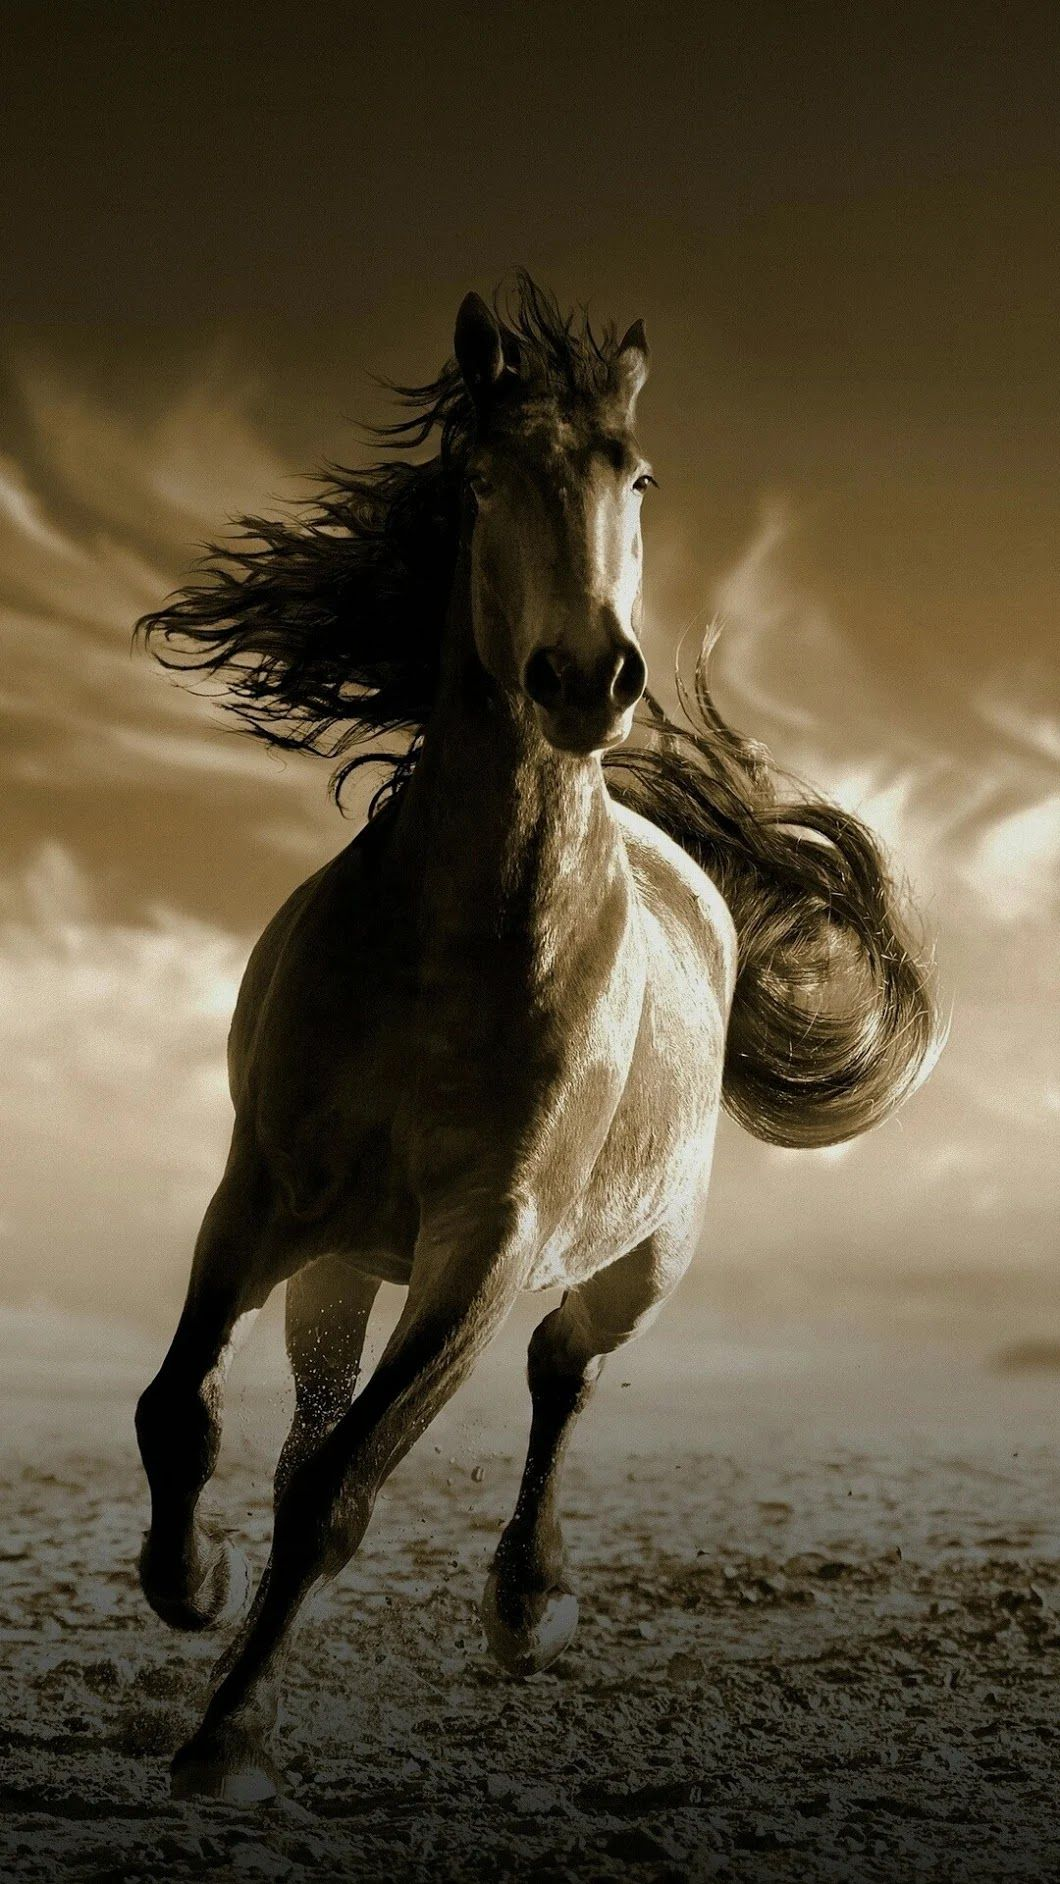 Running Horse Hd Wallpaper For Mobile 1060x1884 Download Hd Wallpaper Wallpapertip